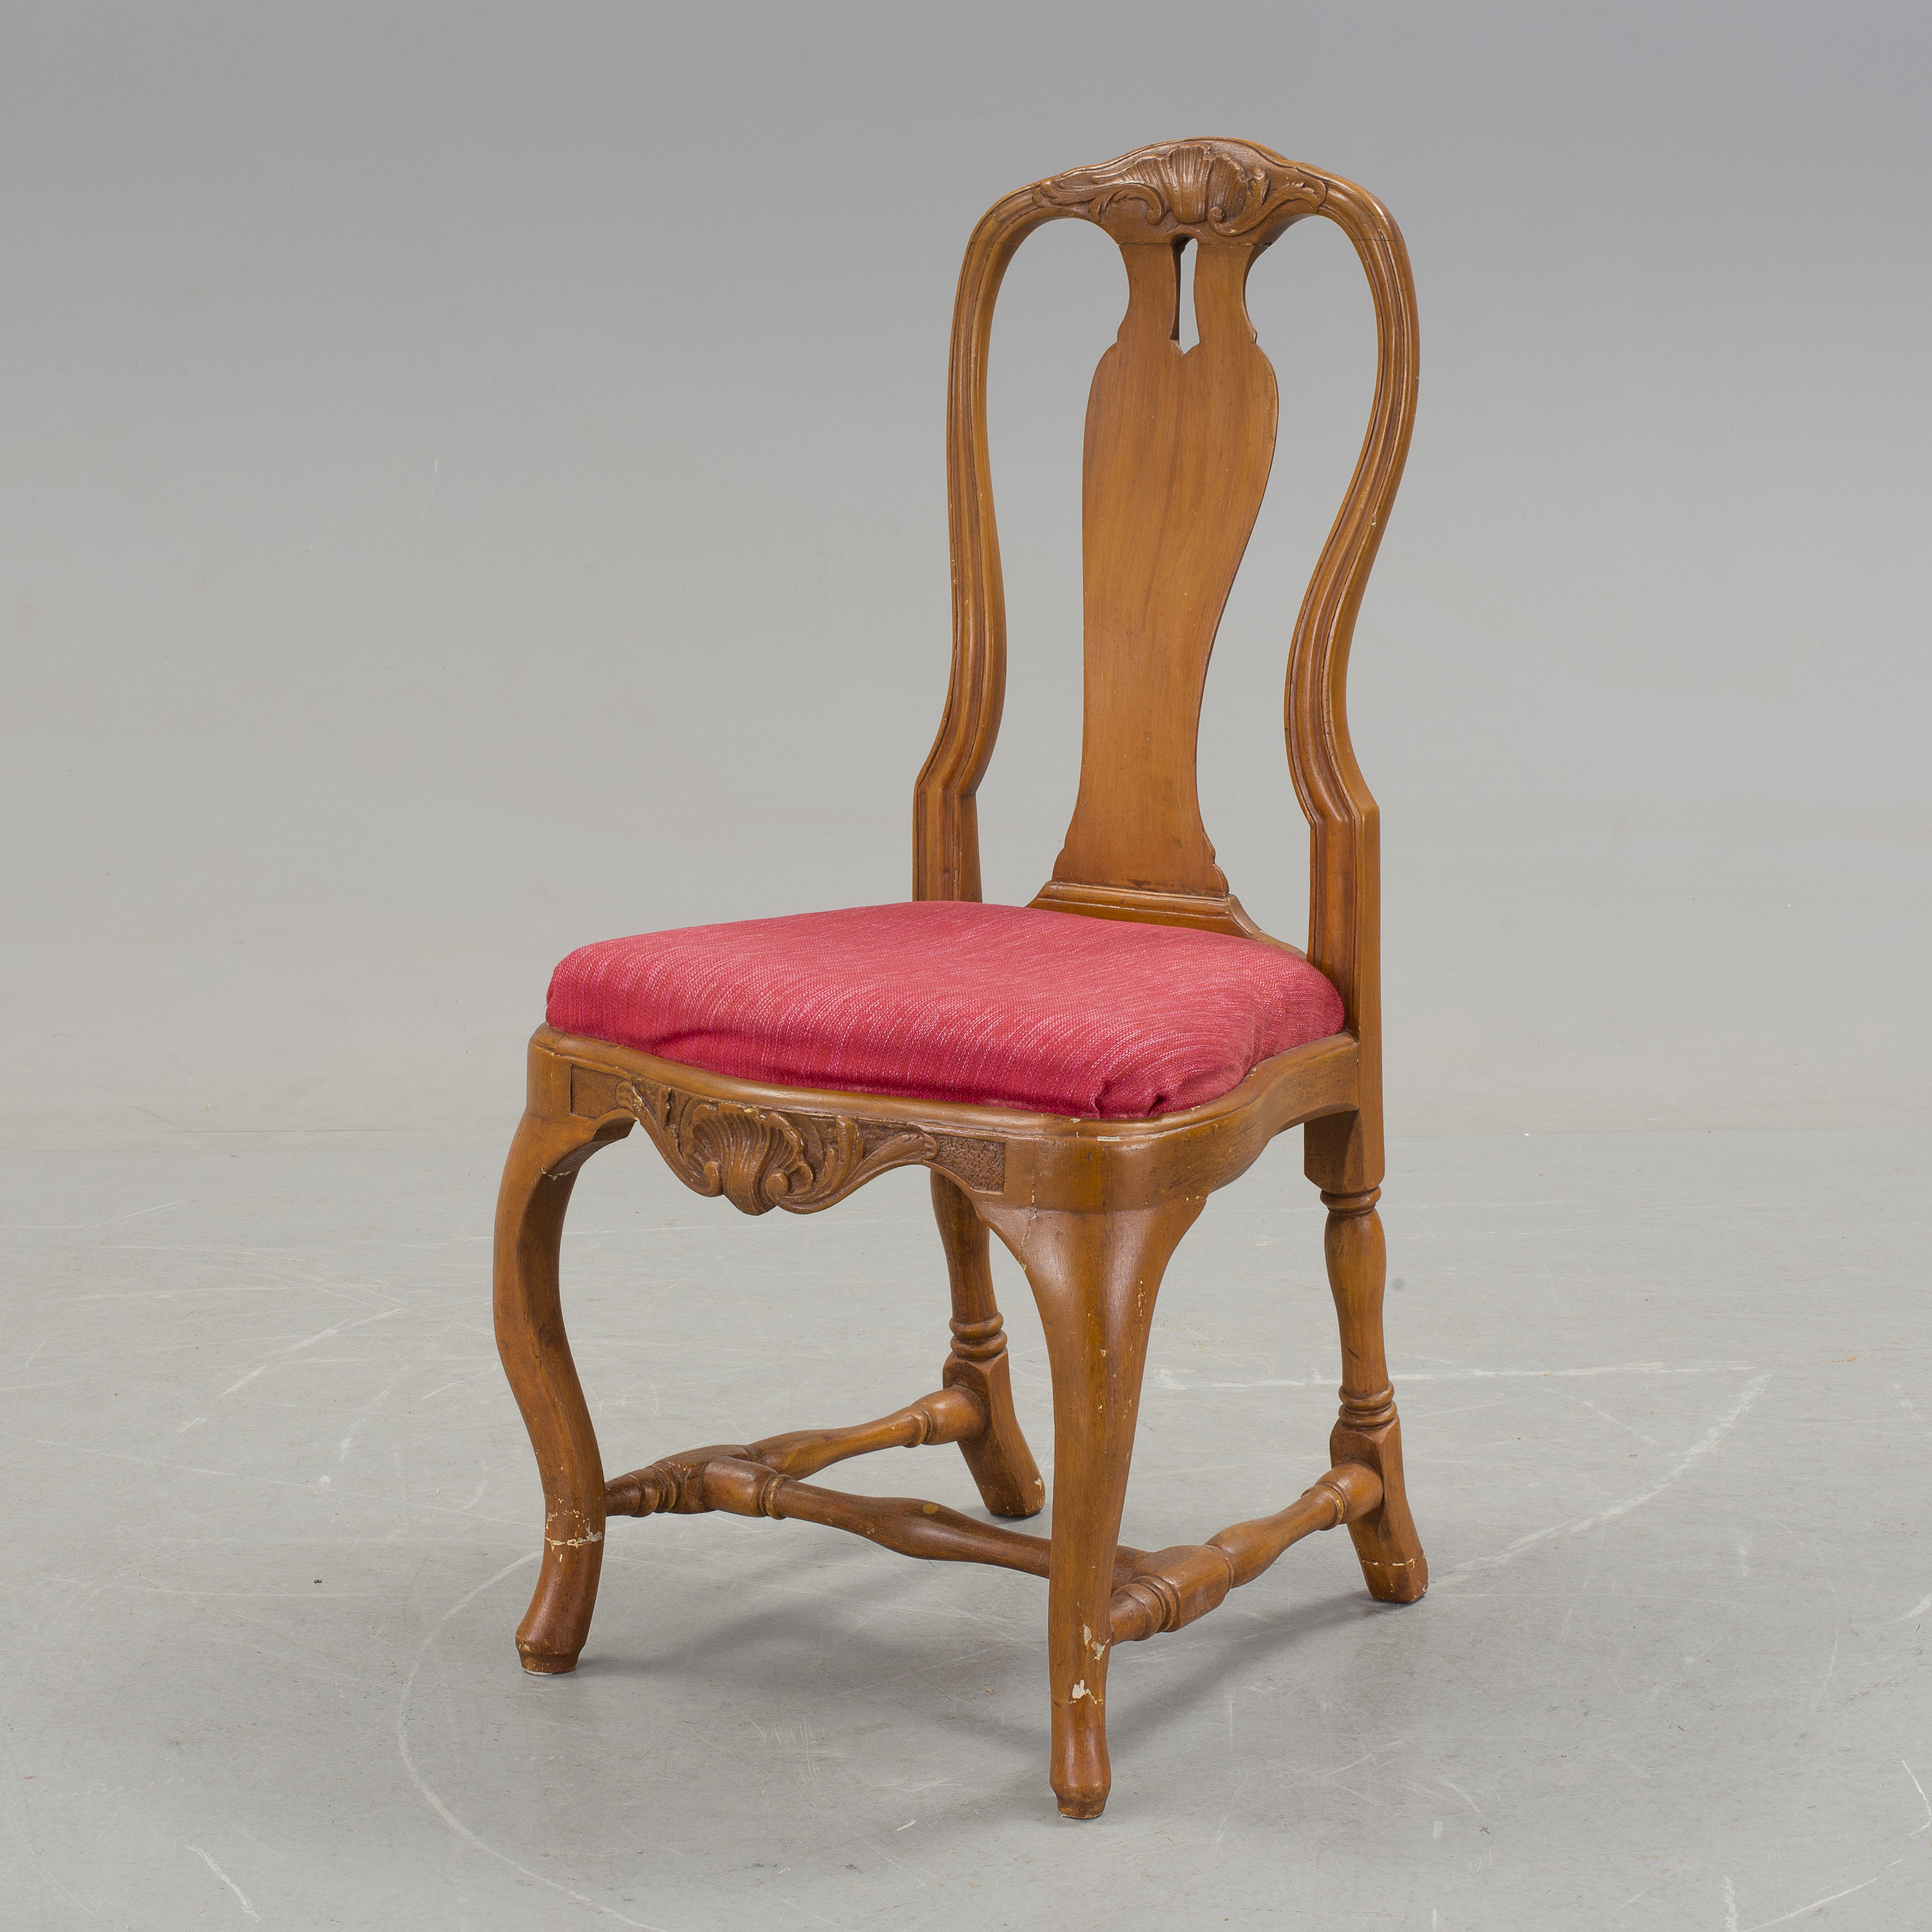 ROKOKO A rococo chair from Stockholm ca 1760 70 Bukowskis